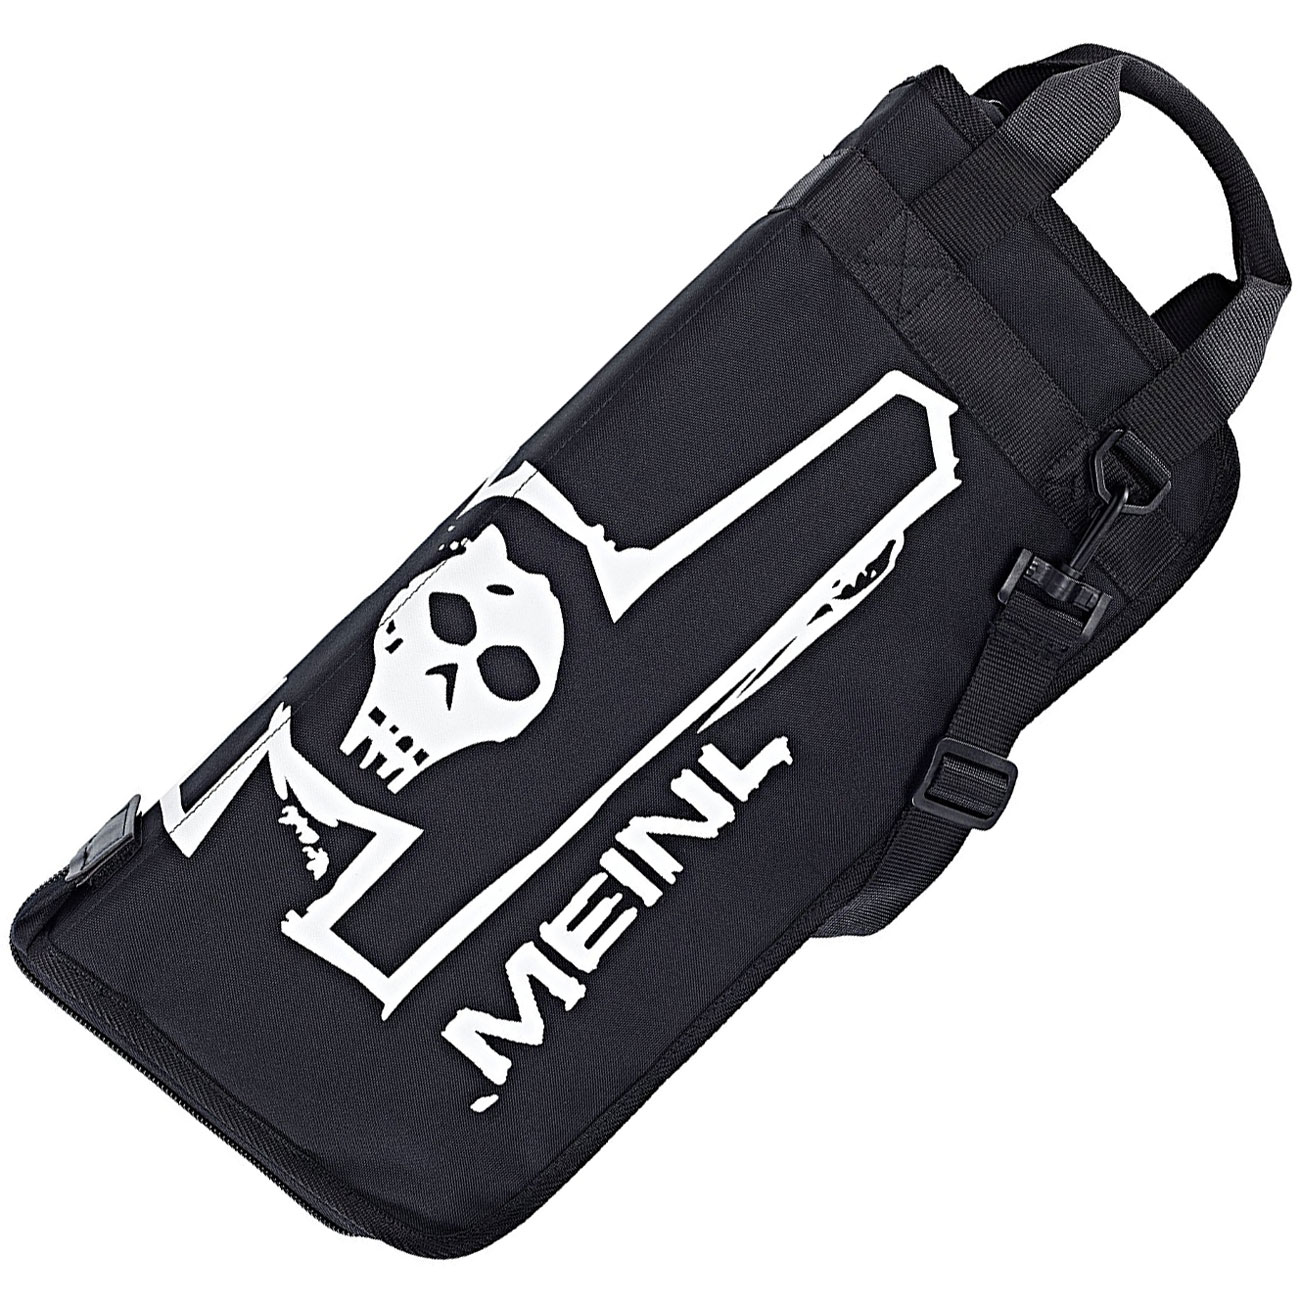 Meinl Black Gig Stick Bag